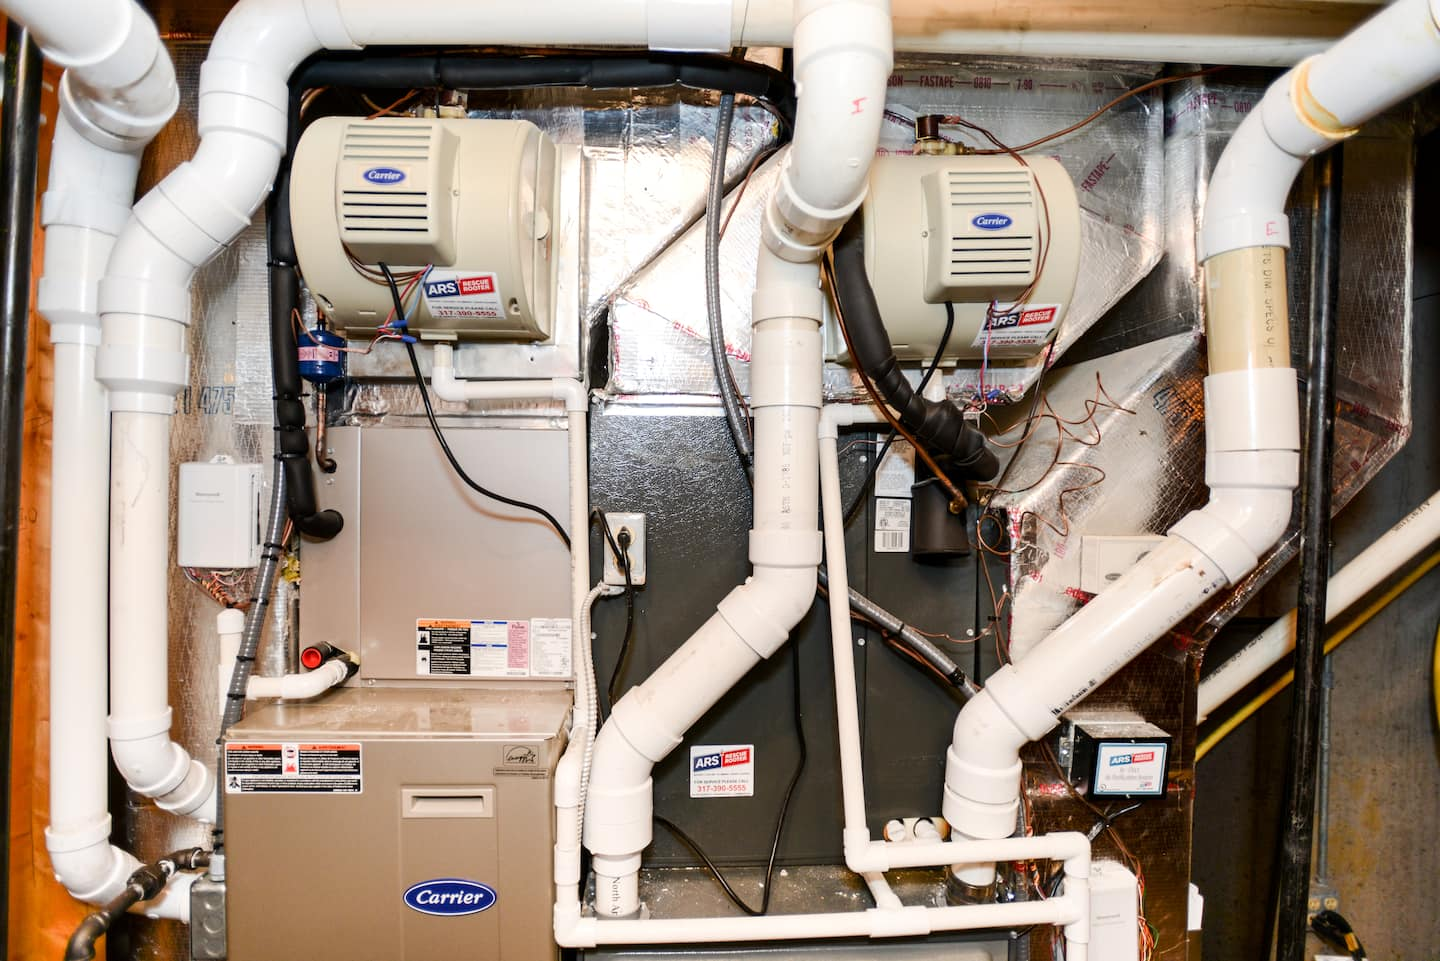 Carrier Gas Furnace Wiring Diagram 2017 2018 Best Cars Reviews